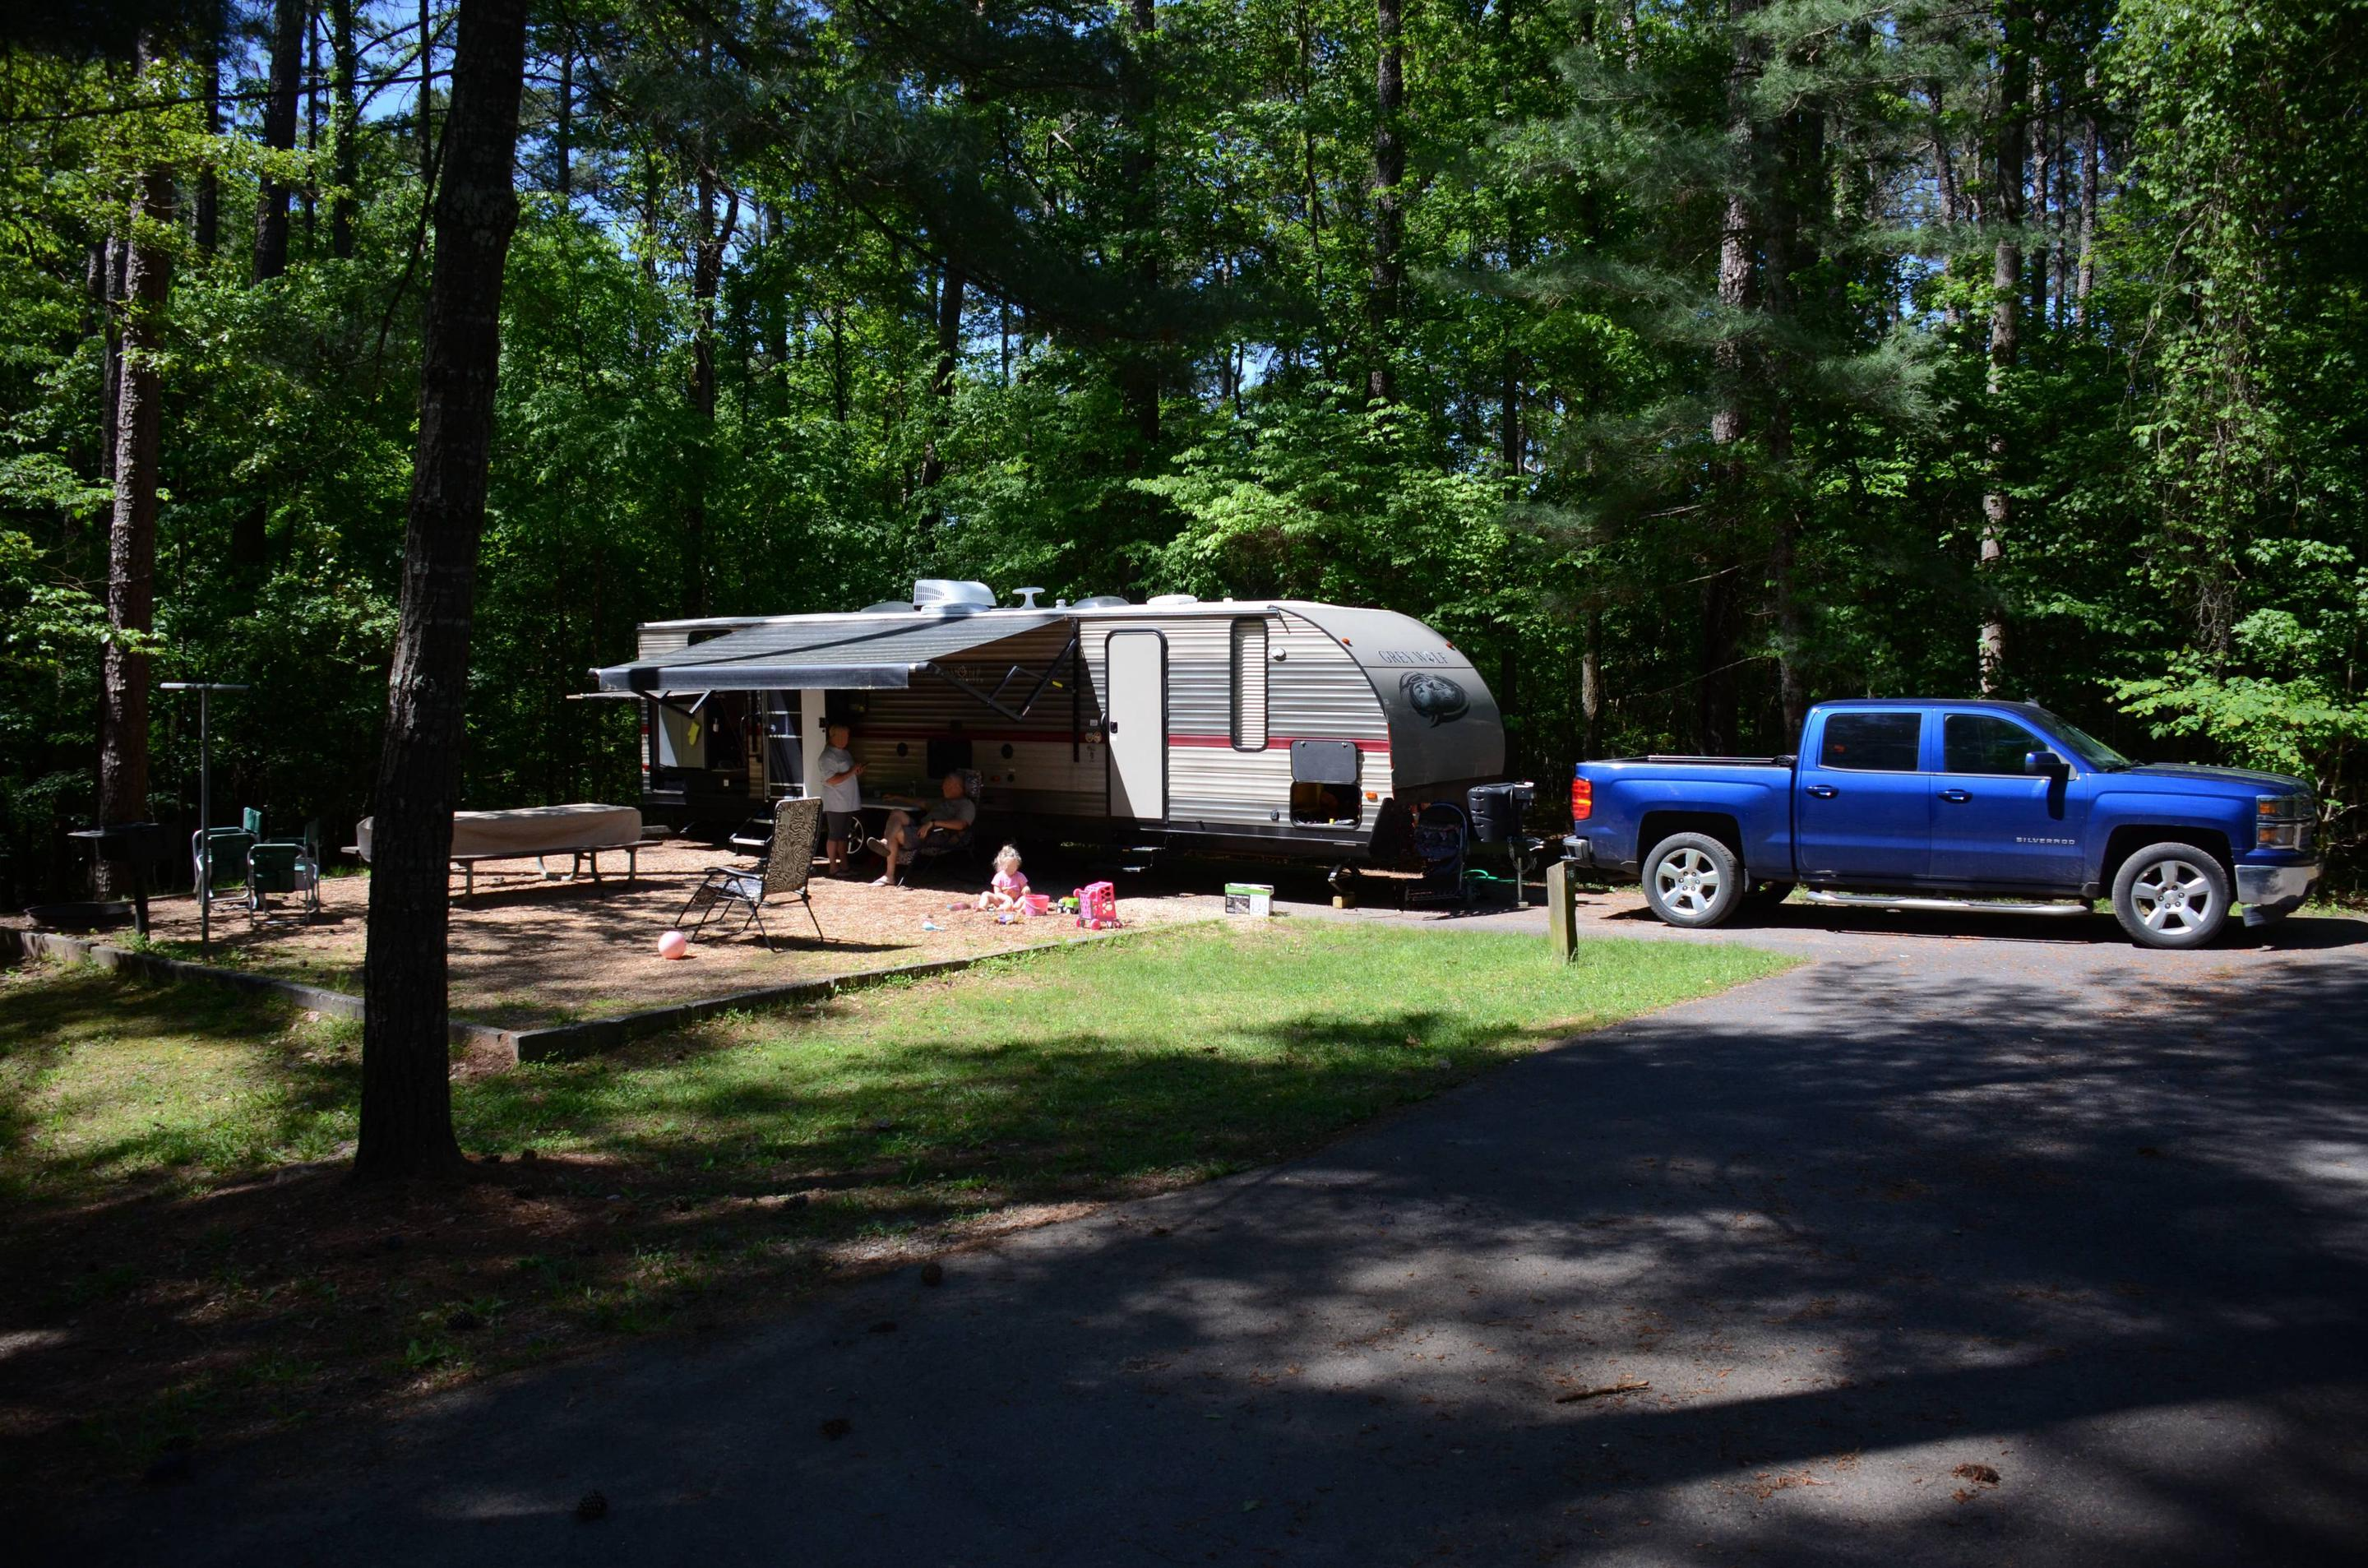 Campsite view, awning-side clearance.McKinney Campground, campsite 76.